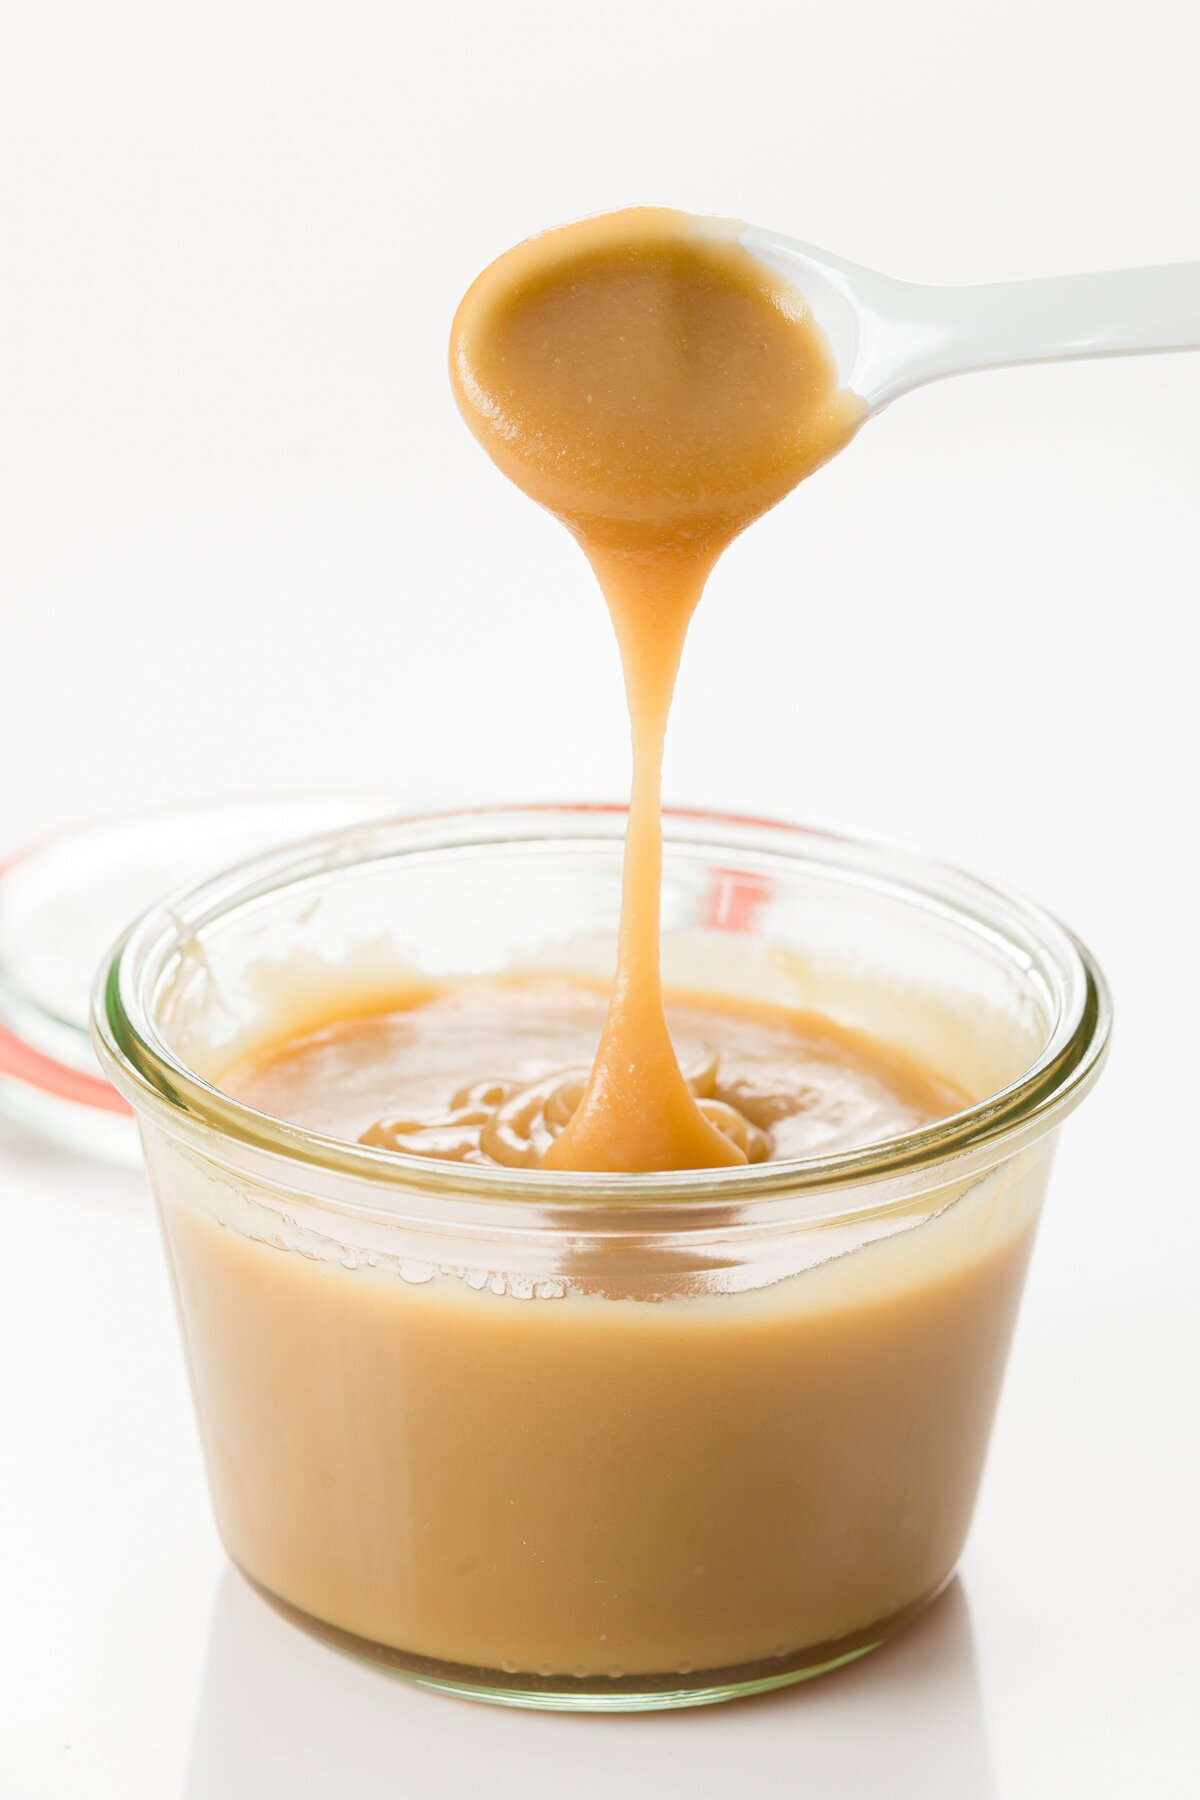 Butterscotch sauce dripping from a spoon into a jar